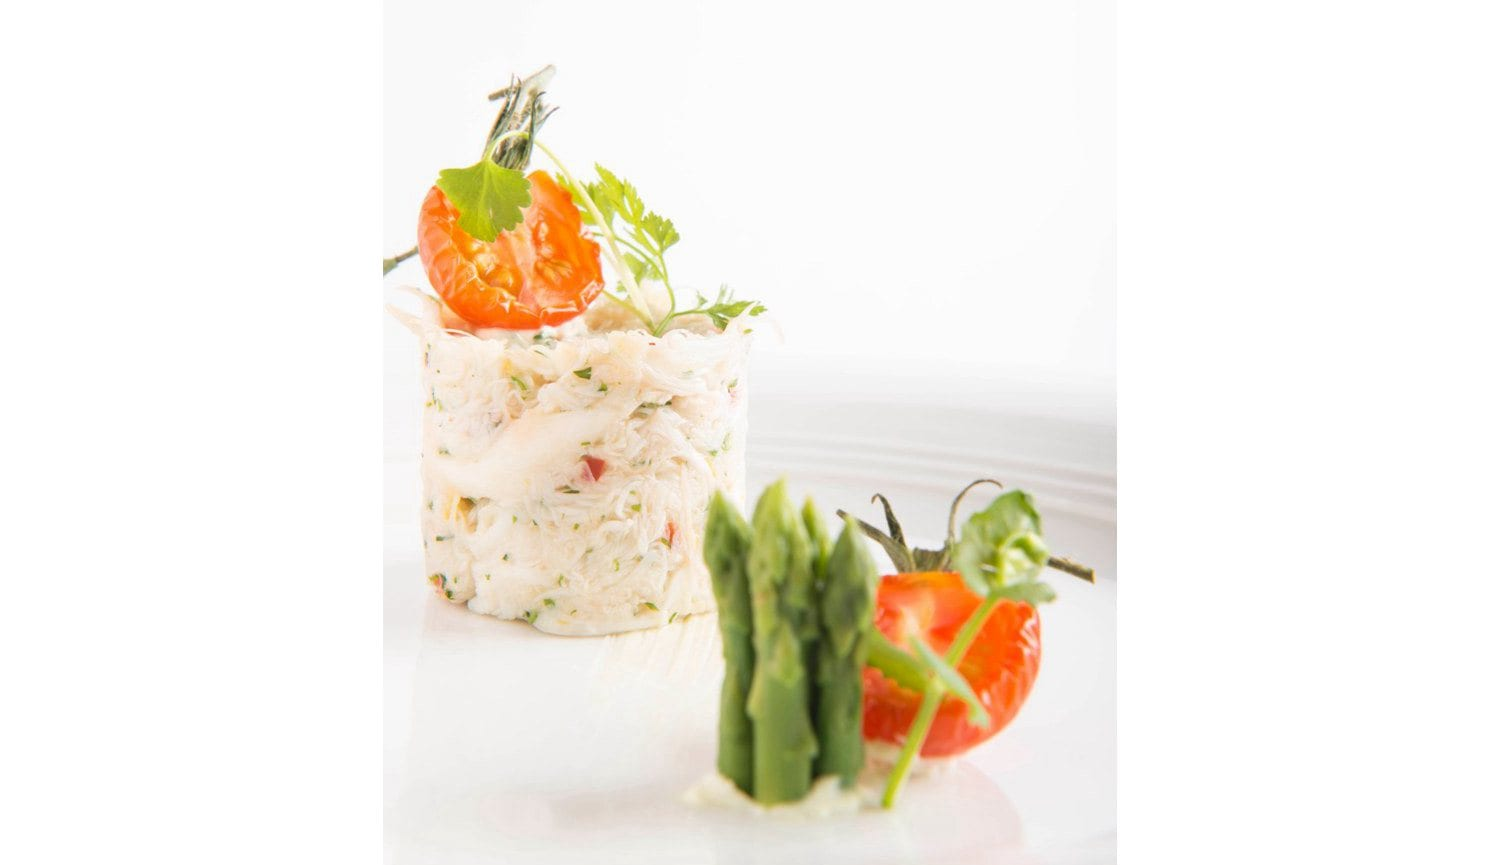 Harvest Menu Signature Dishes - Tian of Lump Crab Salad